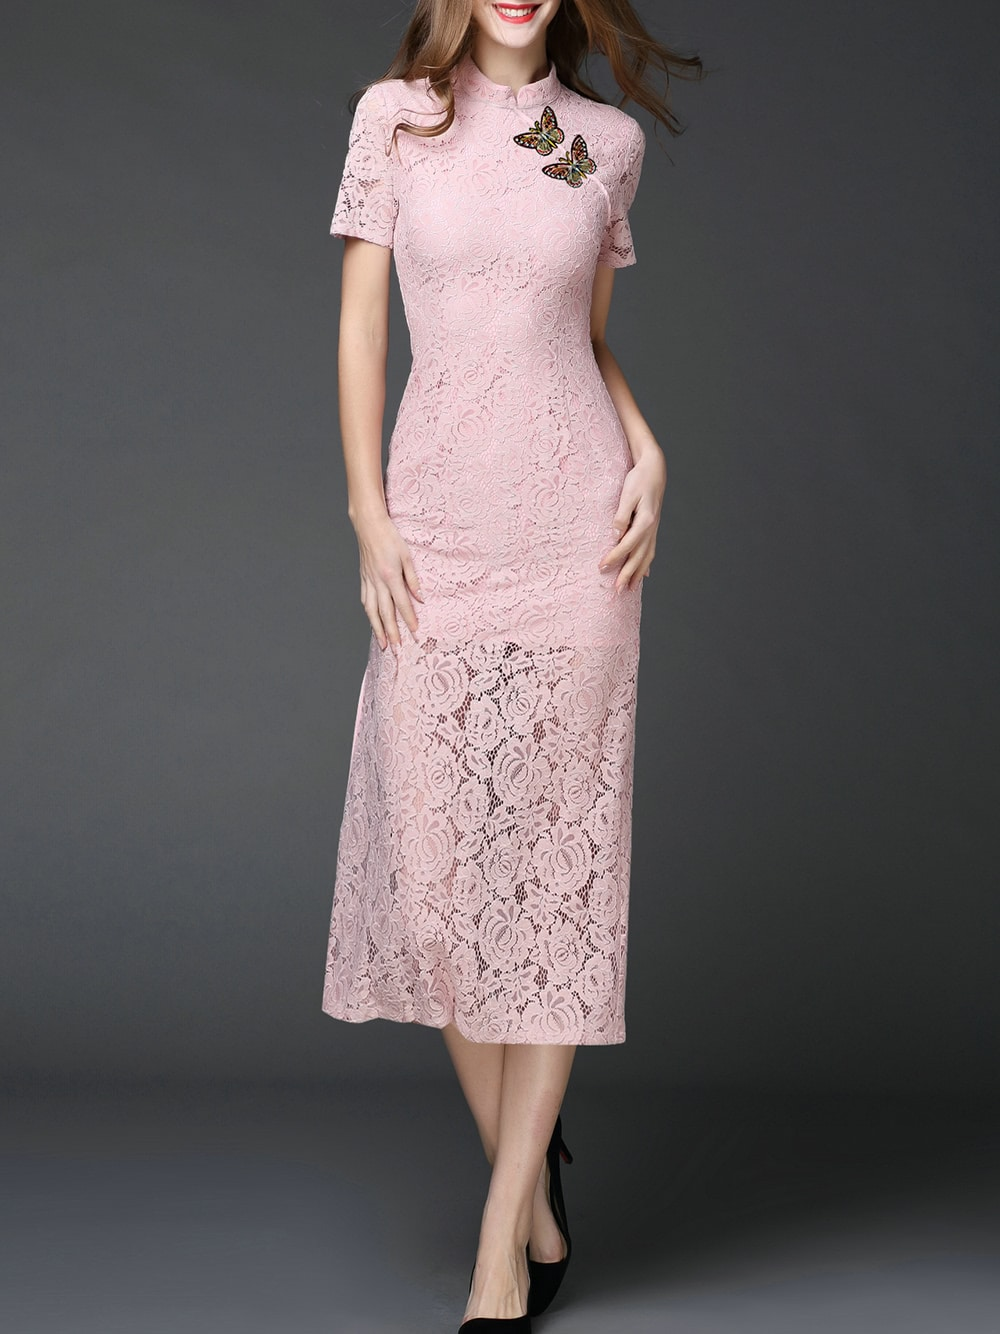 Butterfly embroidered split lace dress shein sheinside